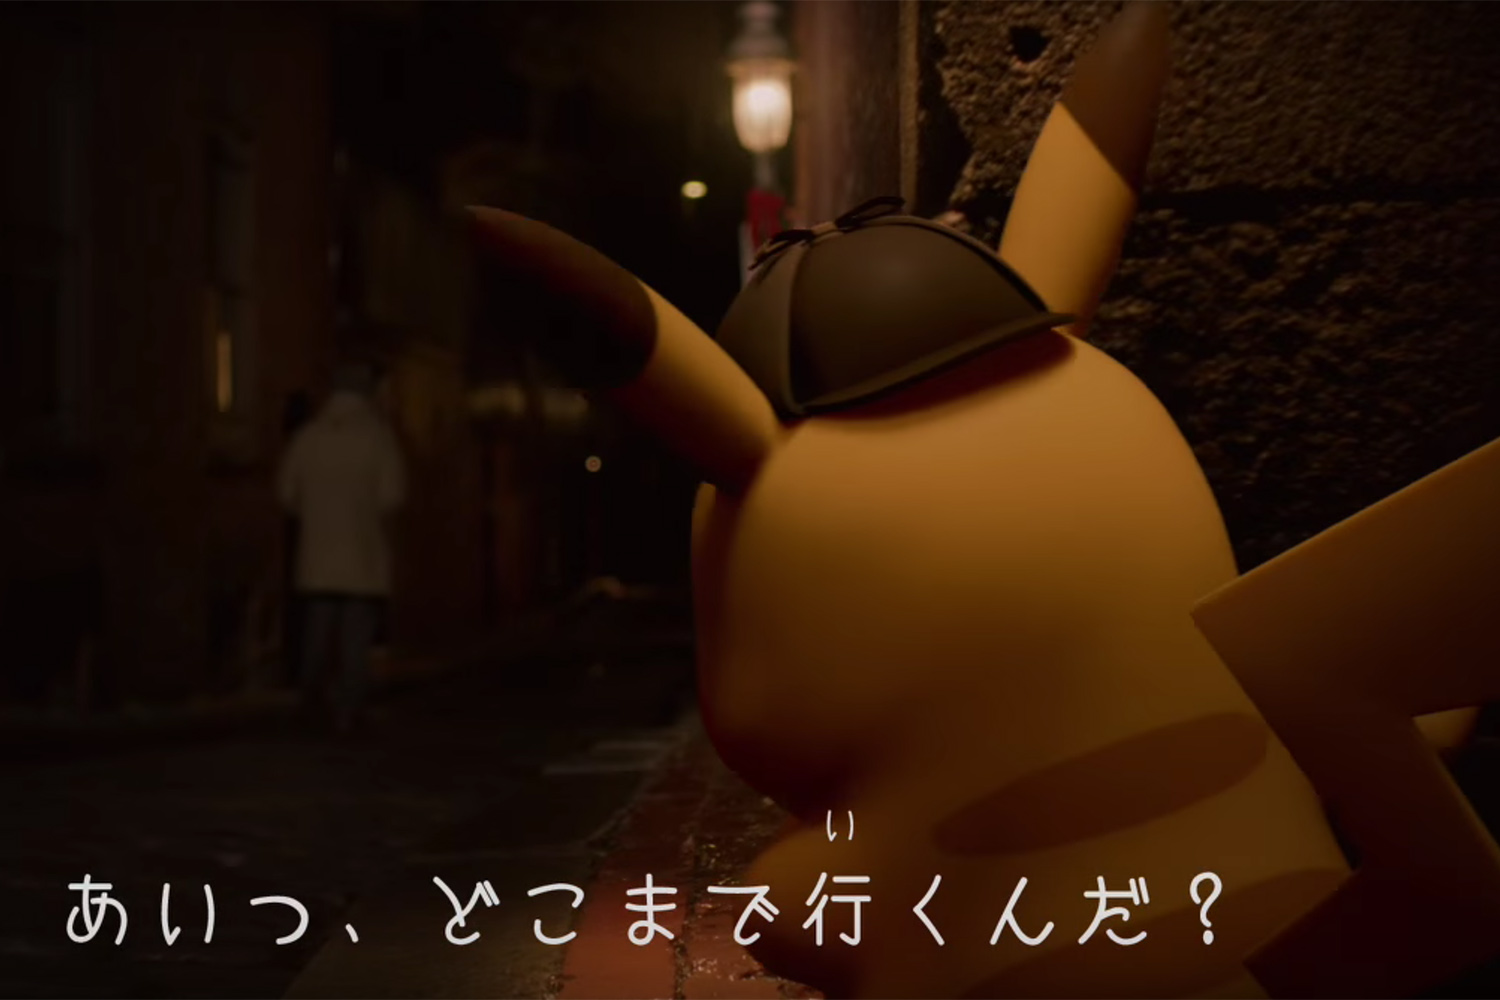 Sherlock Pikachu is the best Pikachu